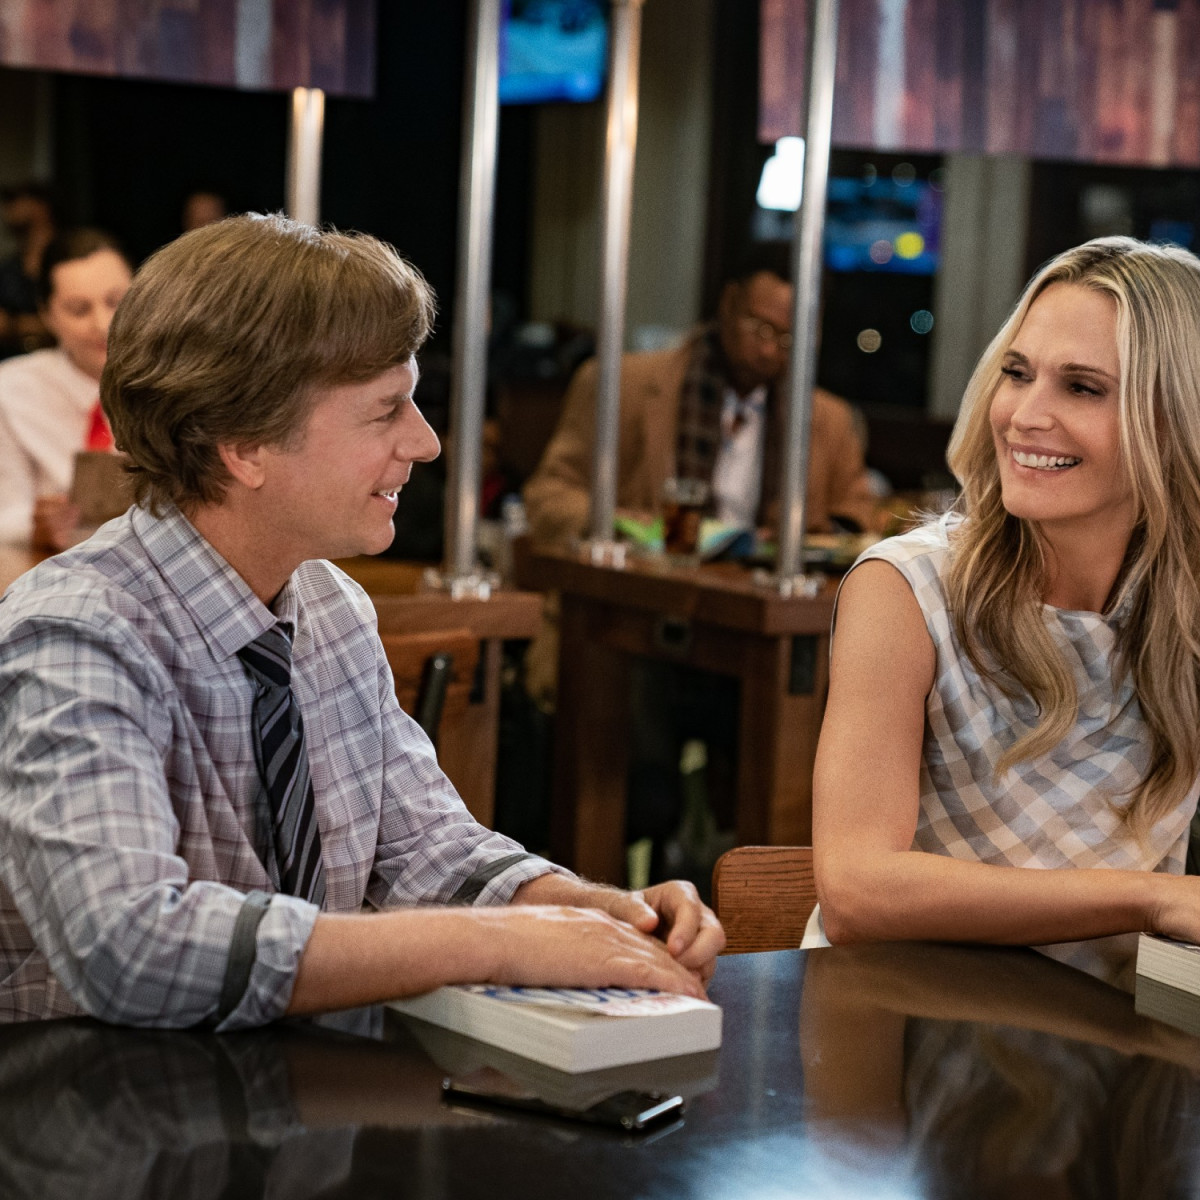 David Spade and Molly Sims in The Wrong Missy